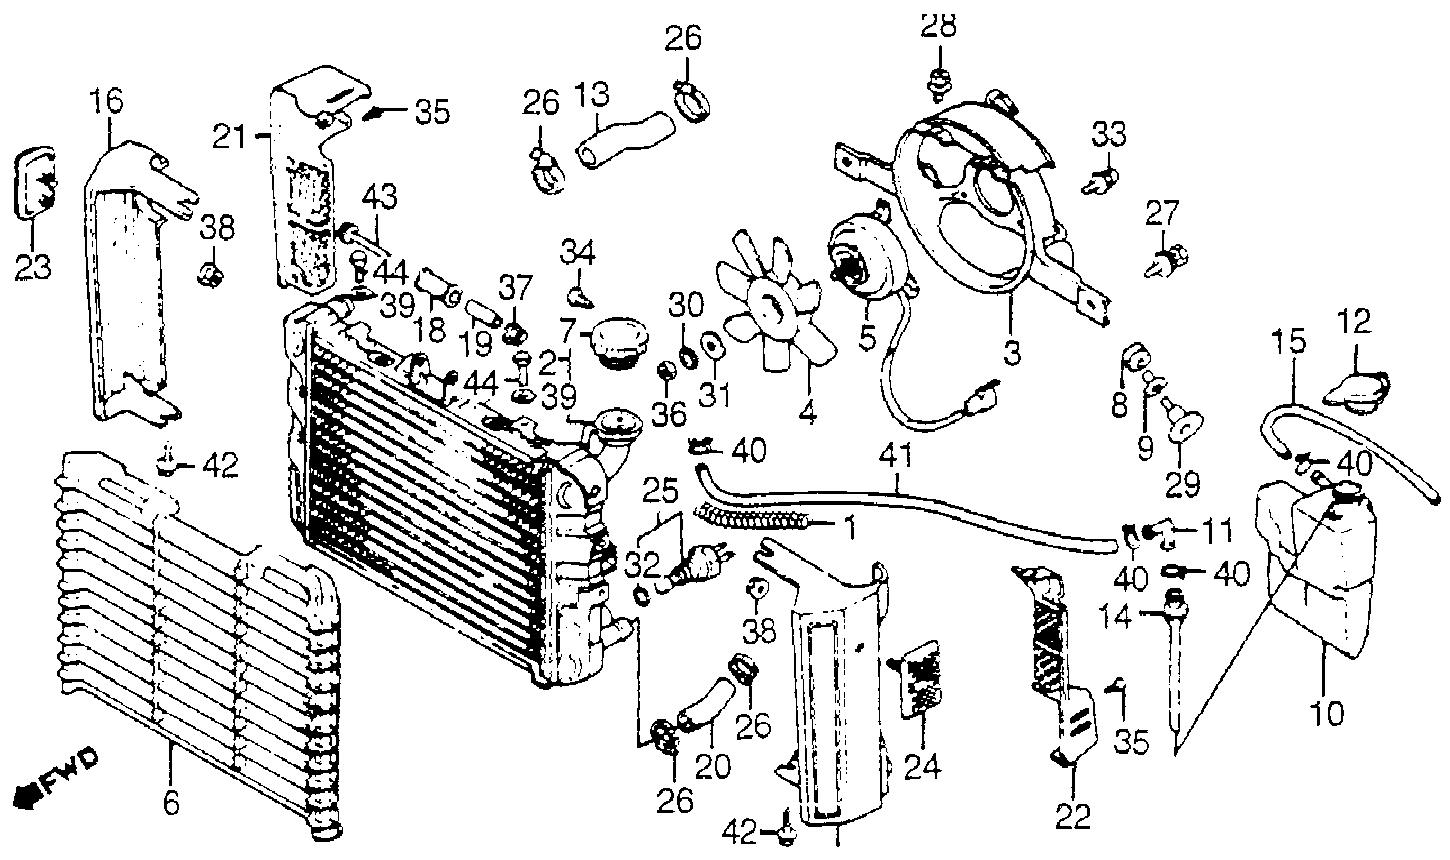 32 Jeep Wrangler Wiring Diagram